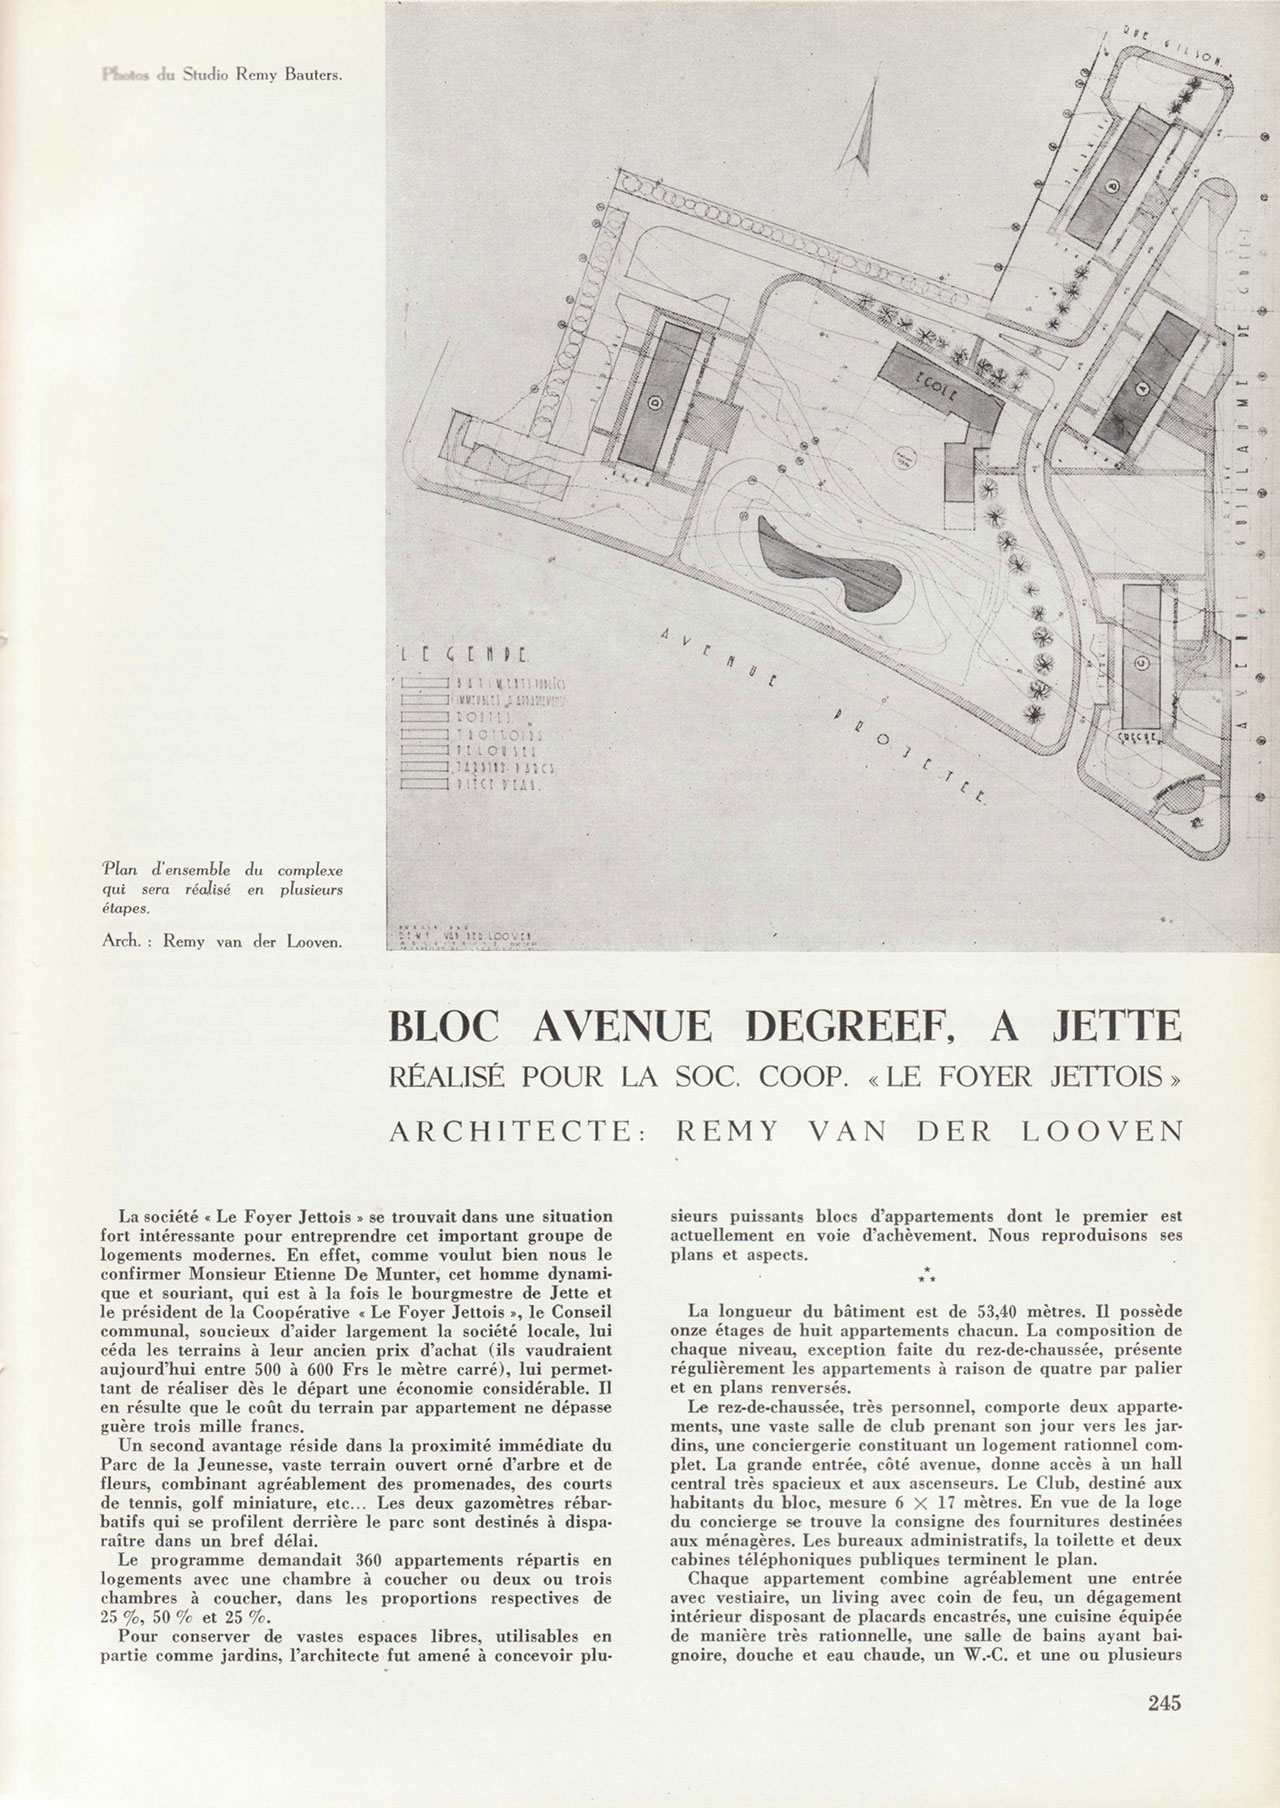 Bloc Avenue Degreef, à Jette